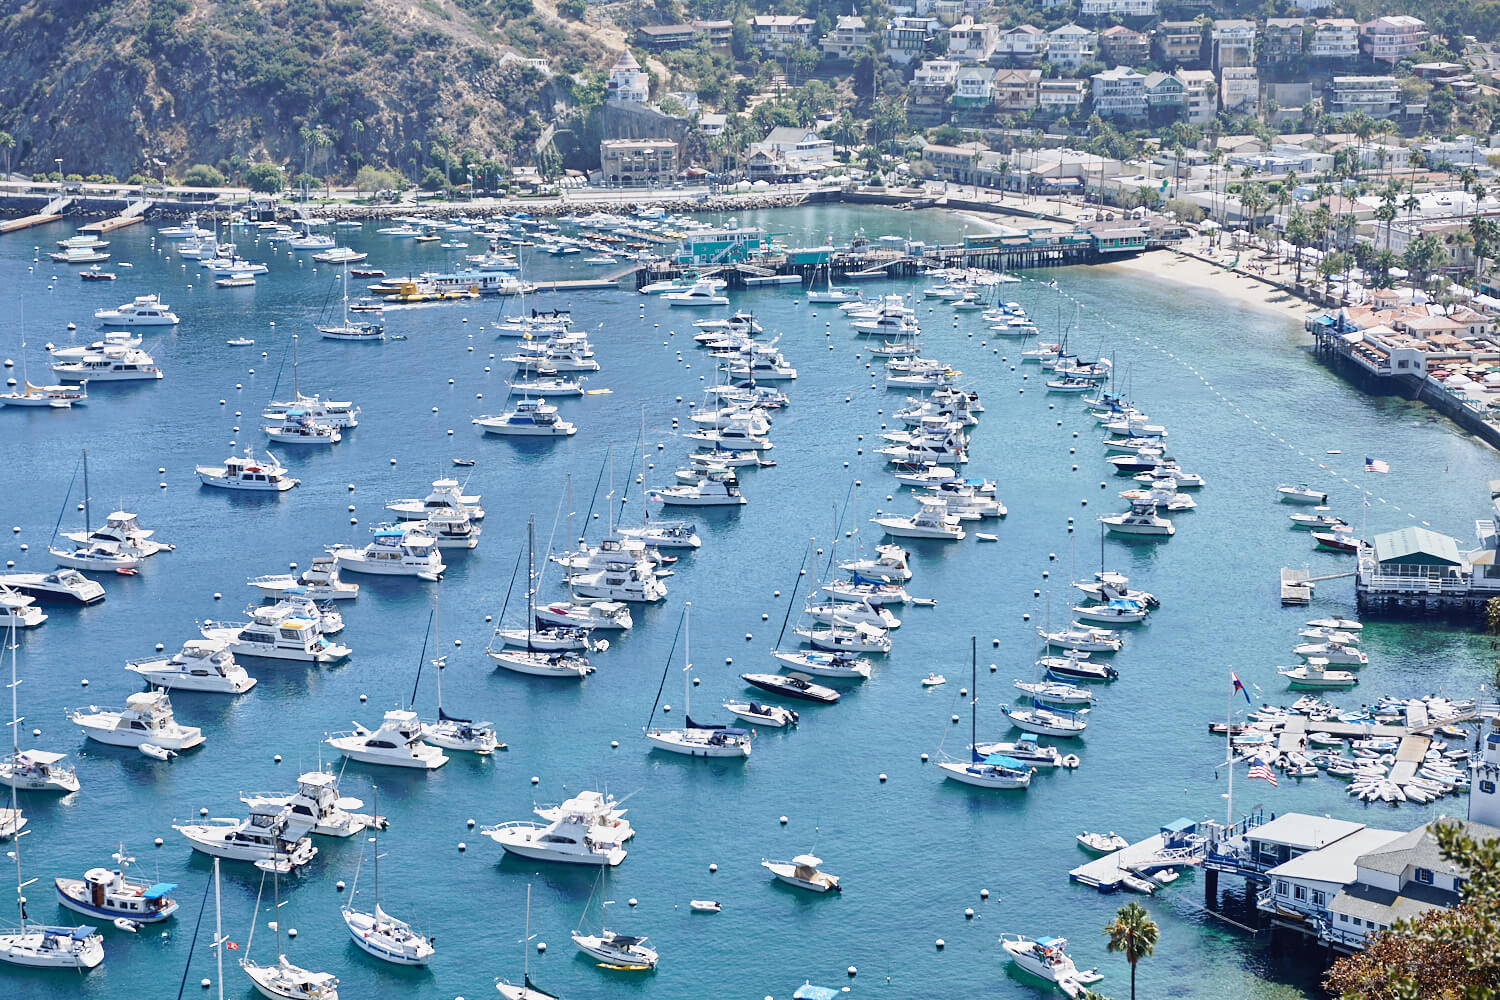 Many small yachts  by lifestyle photographer Tim Cole